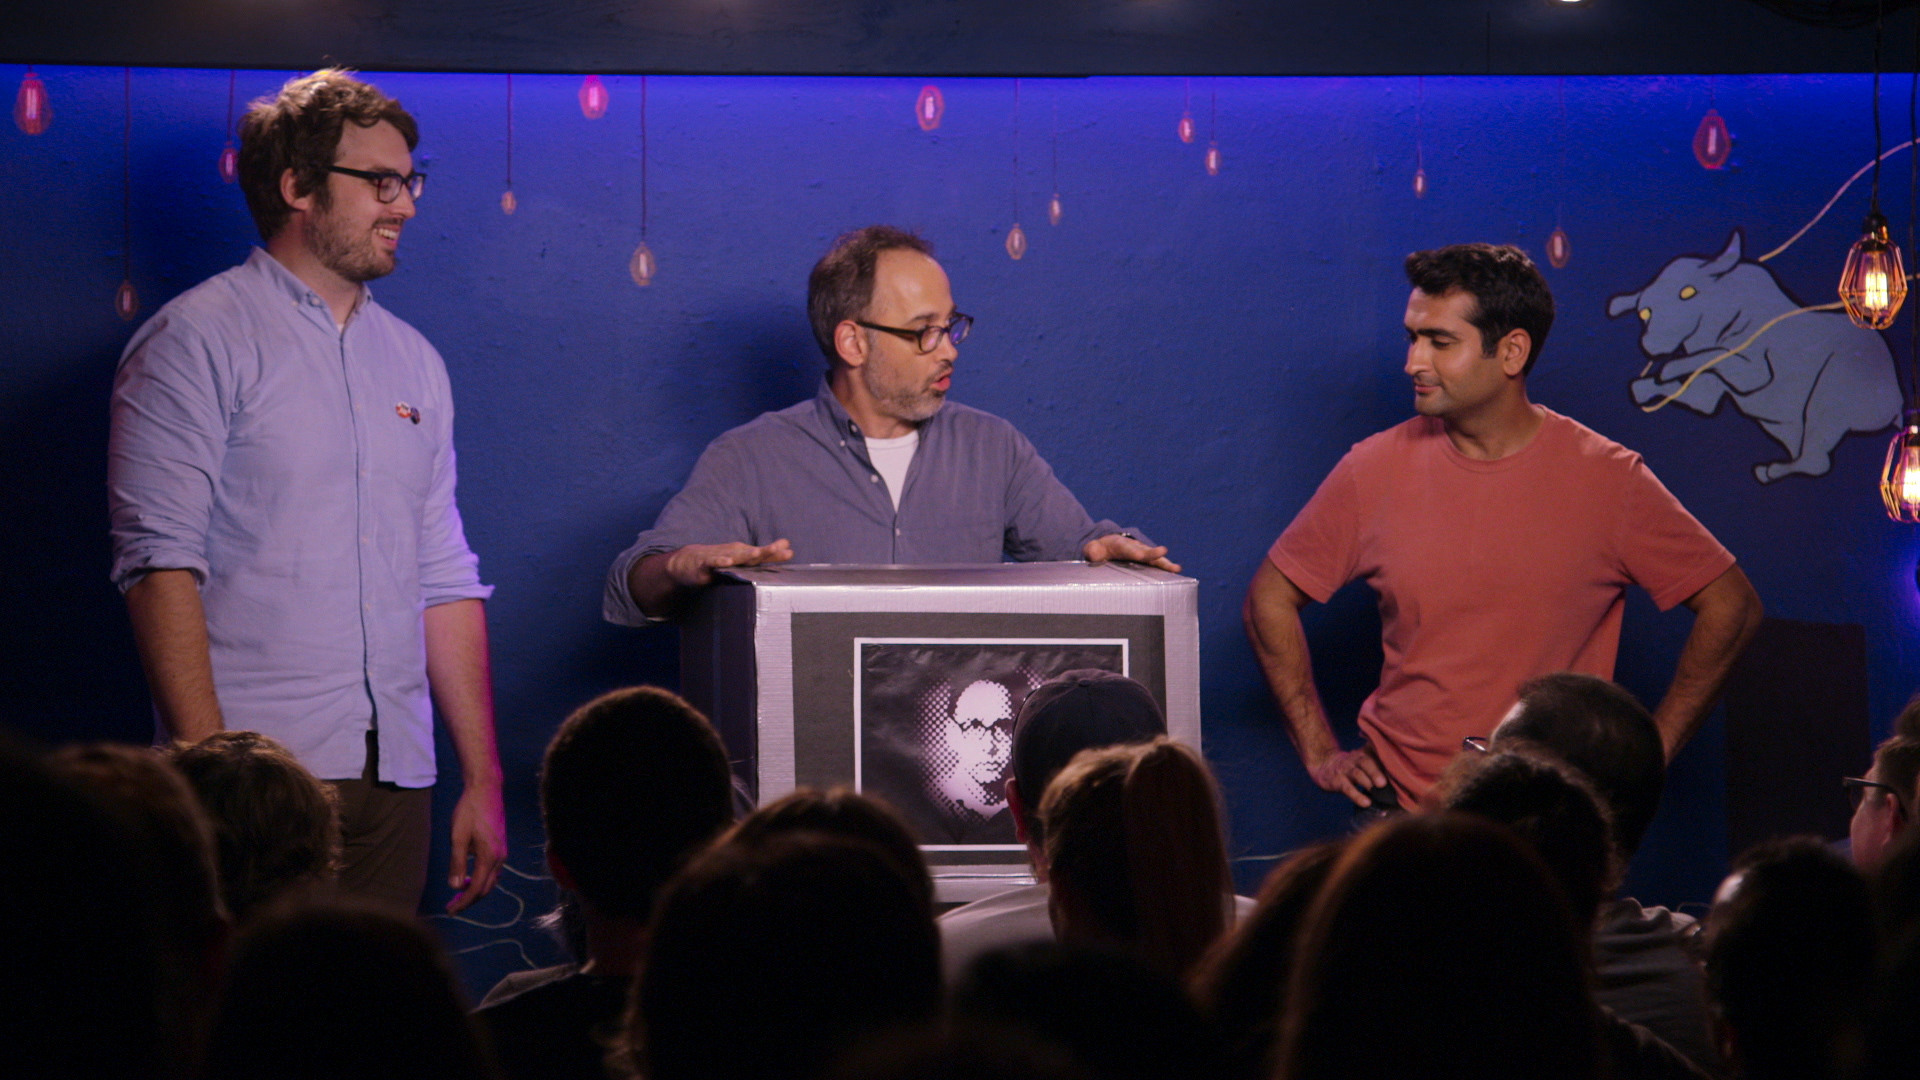 David Wain - A Magic Trick in the Box of Pain